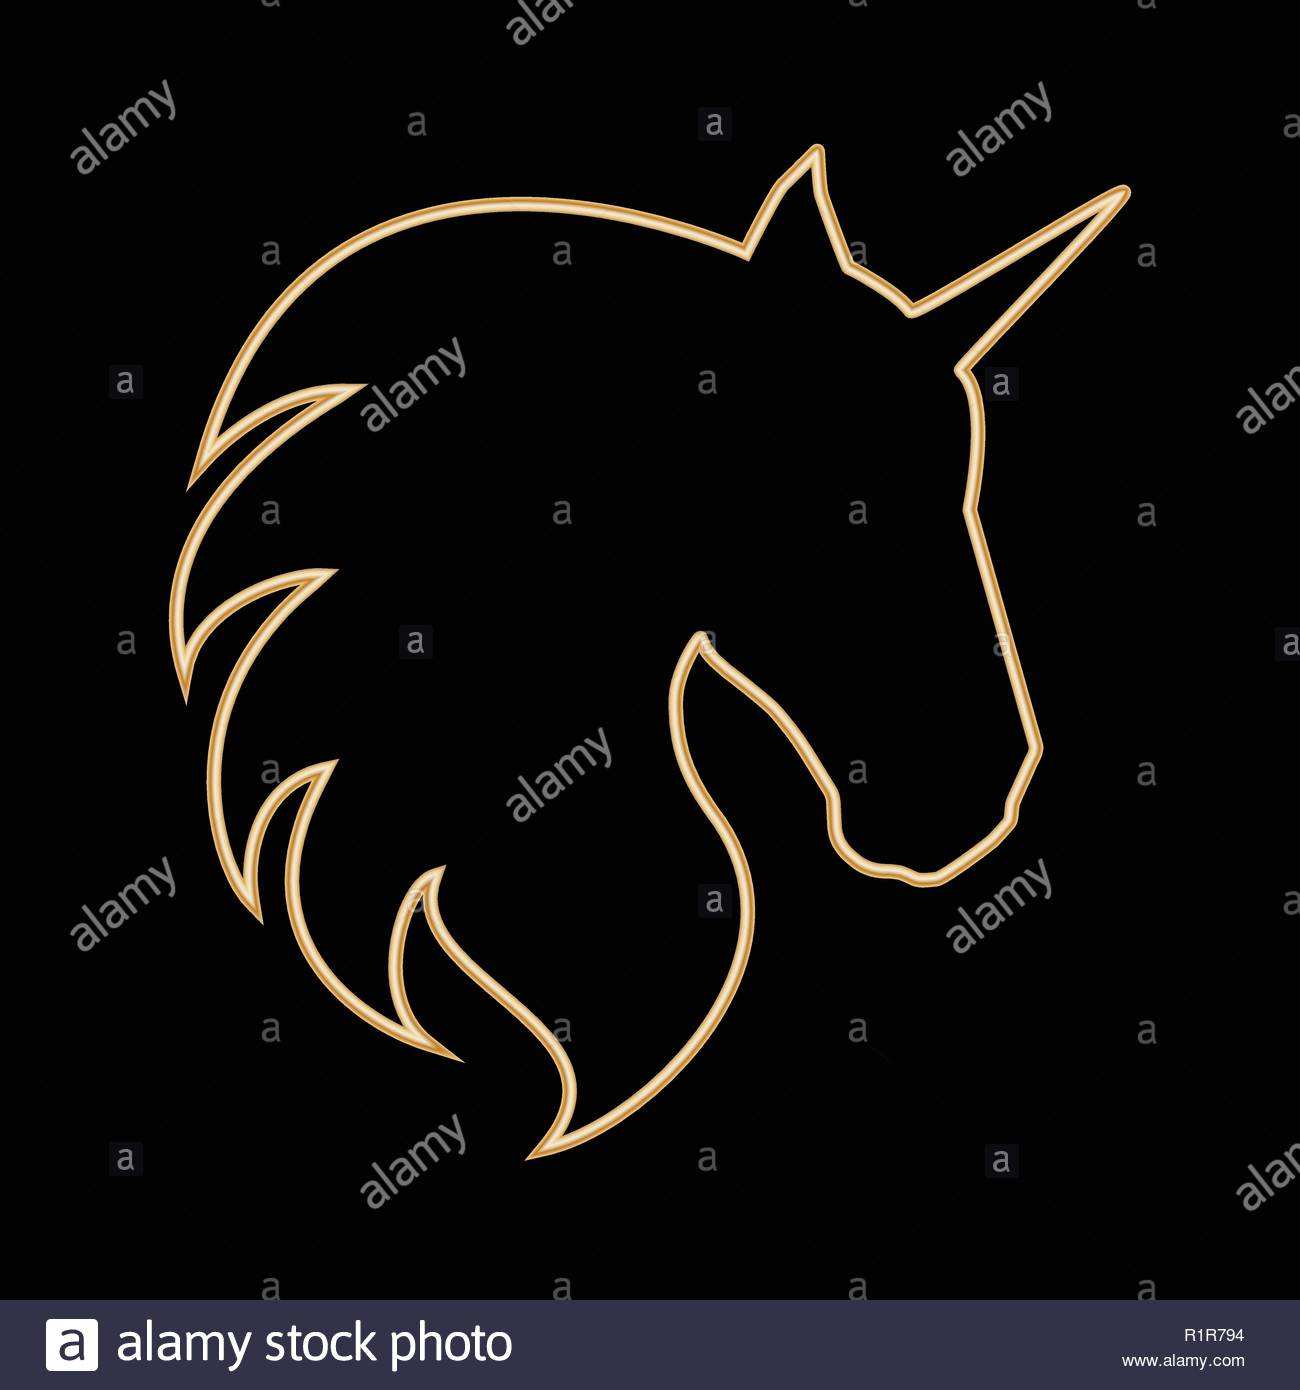 Gold outline of a unicorn head with transparent centre. Isolated on black background. - Stock Image